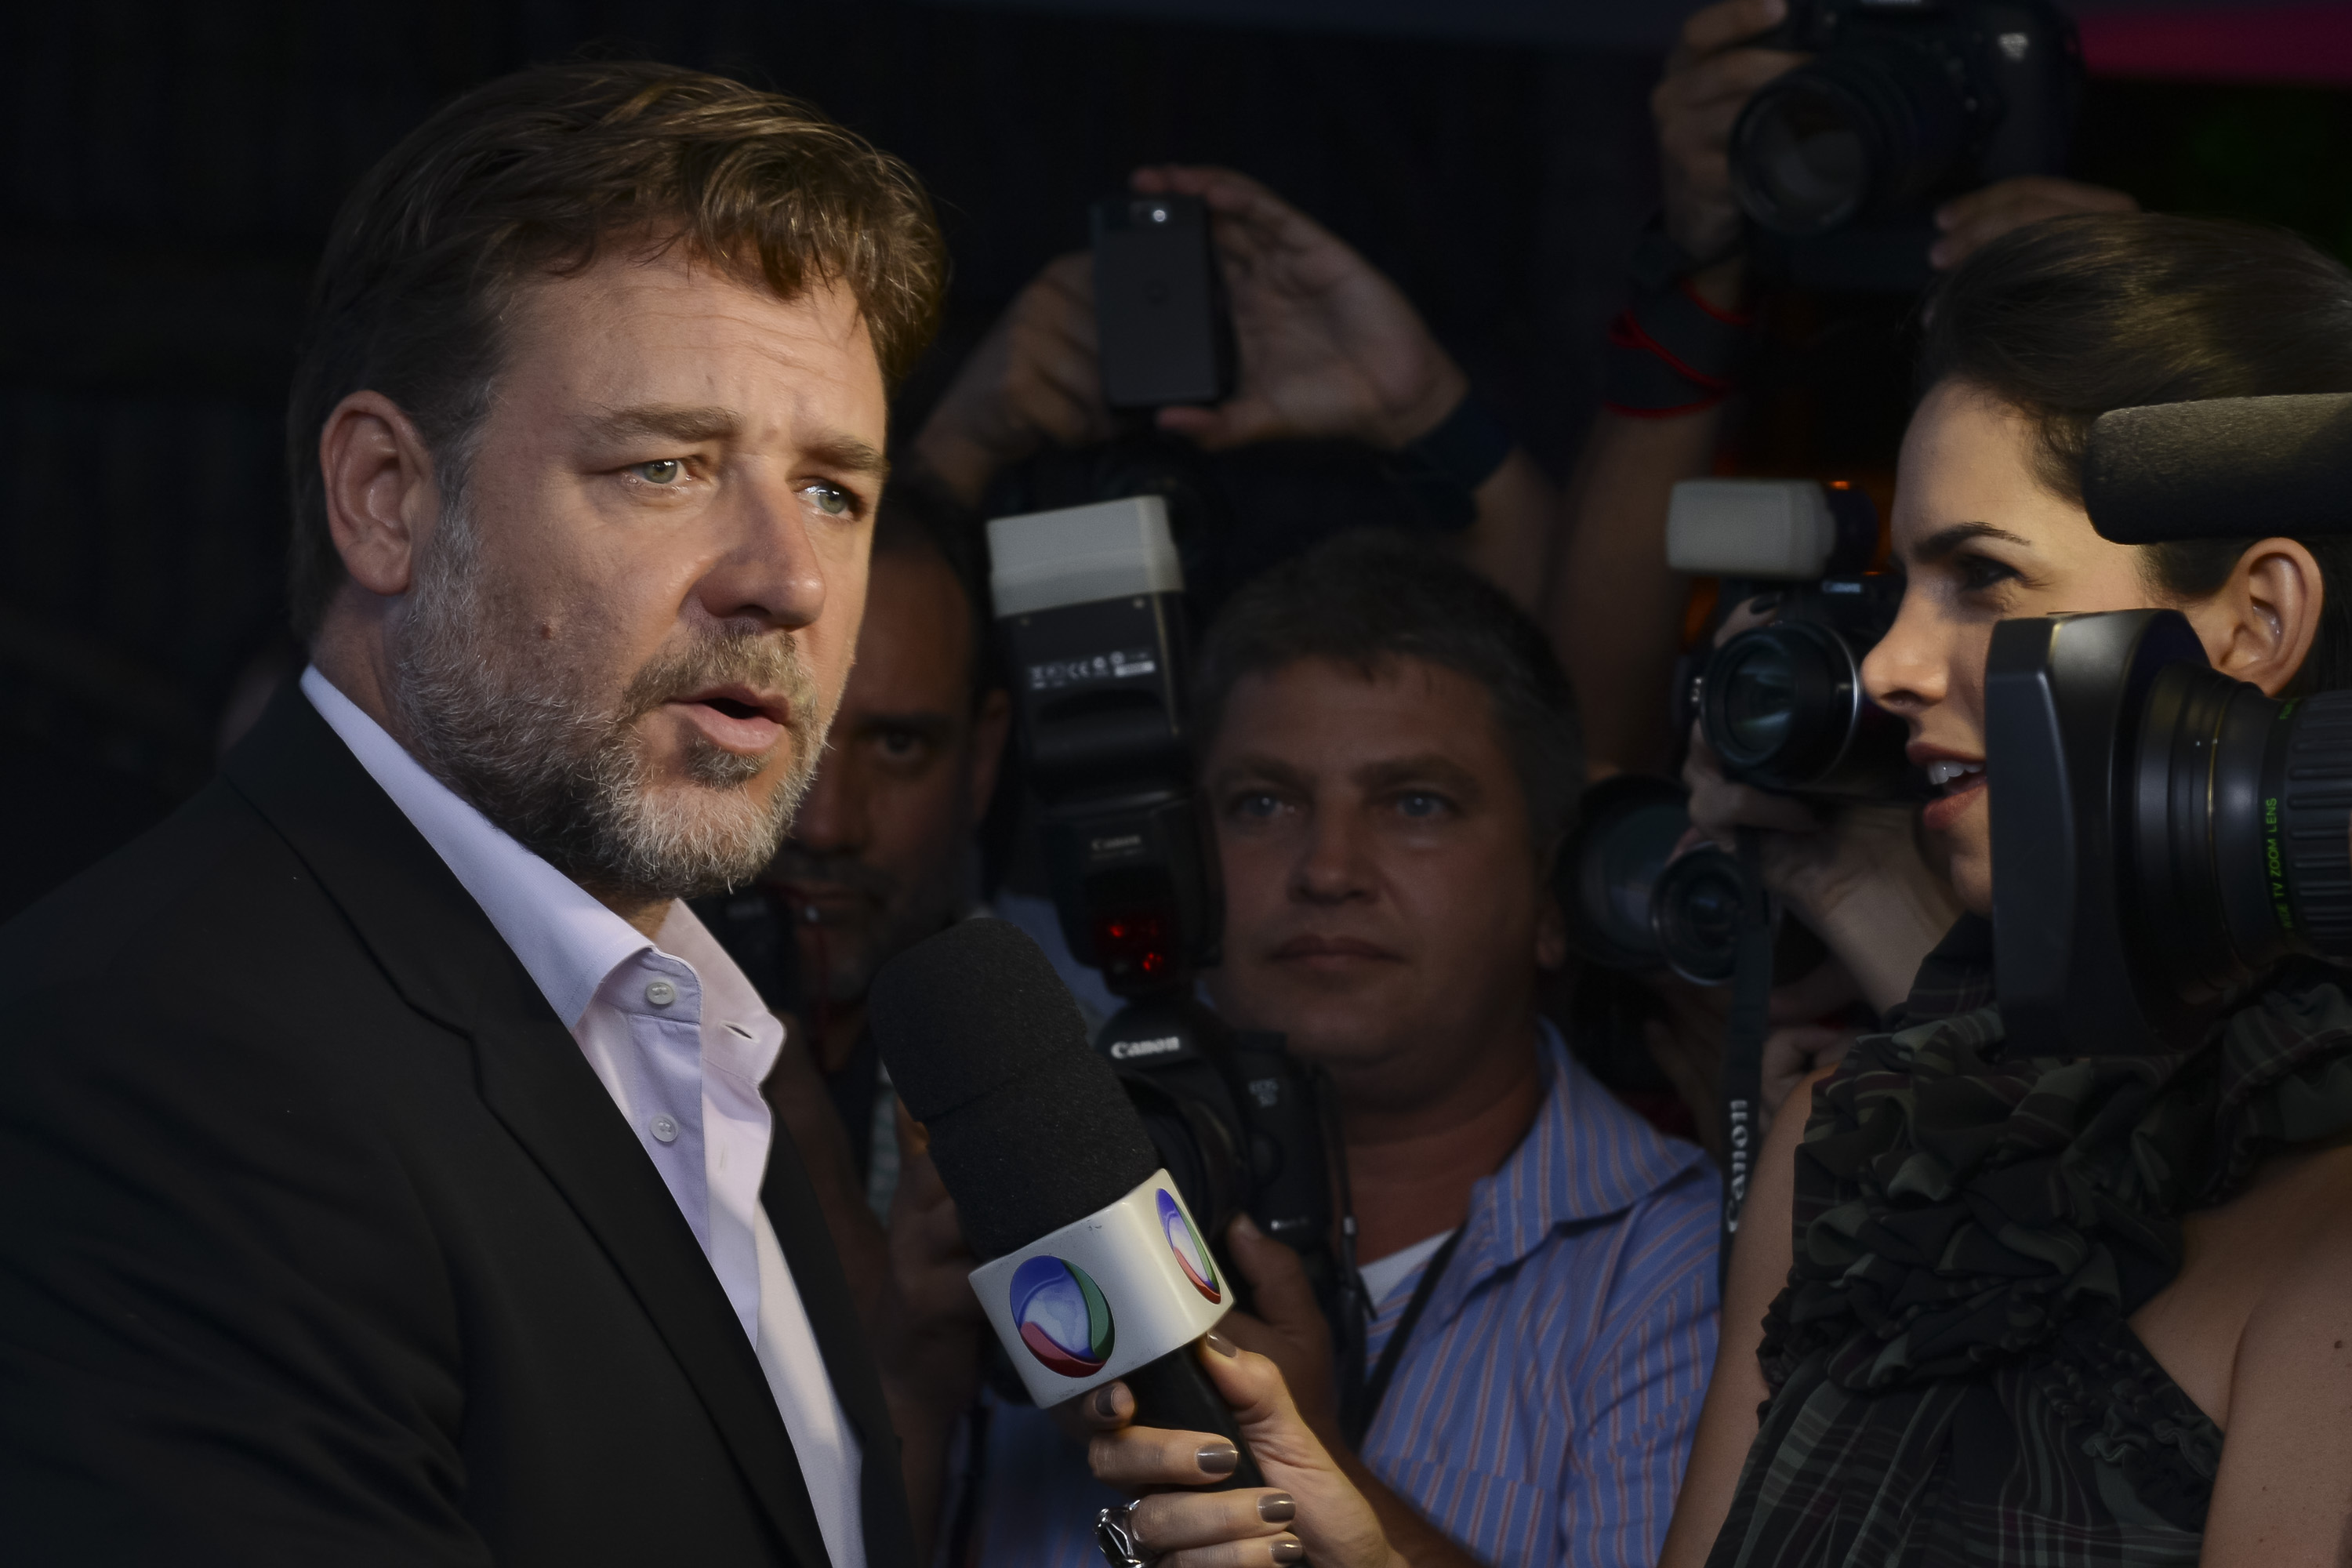 Russell Crowe attends the premiere of Noah in Rio de Janeiro on March 12, 2014. He said the banning of the film in some Muslim countries was  not unexpected